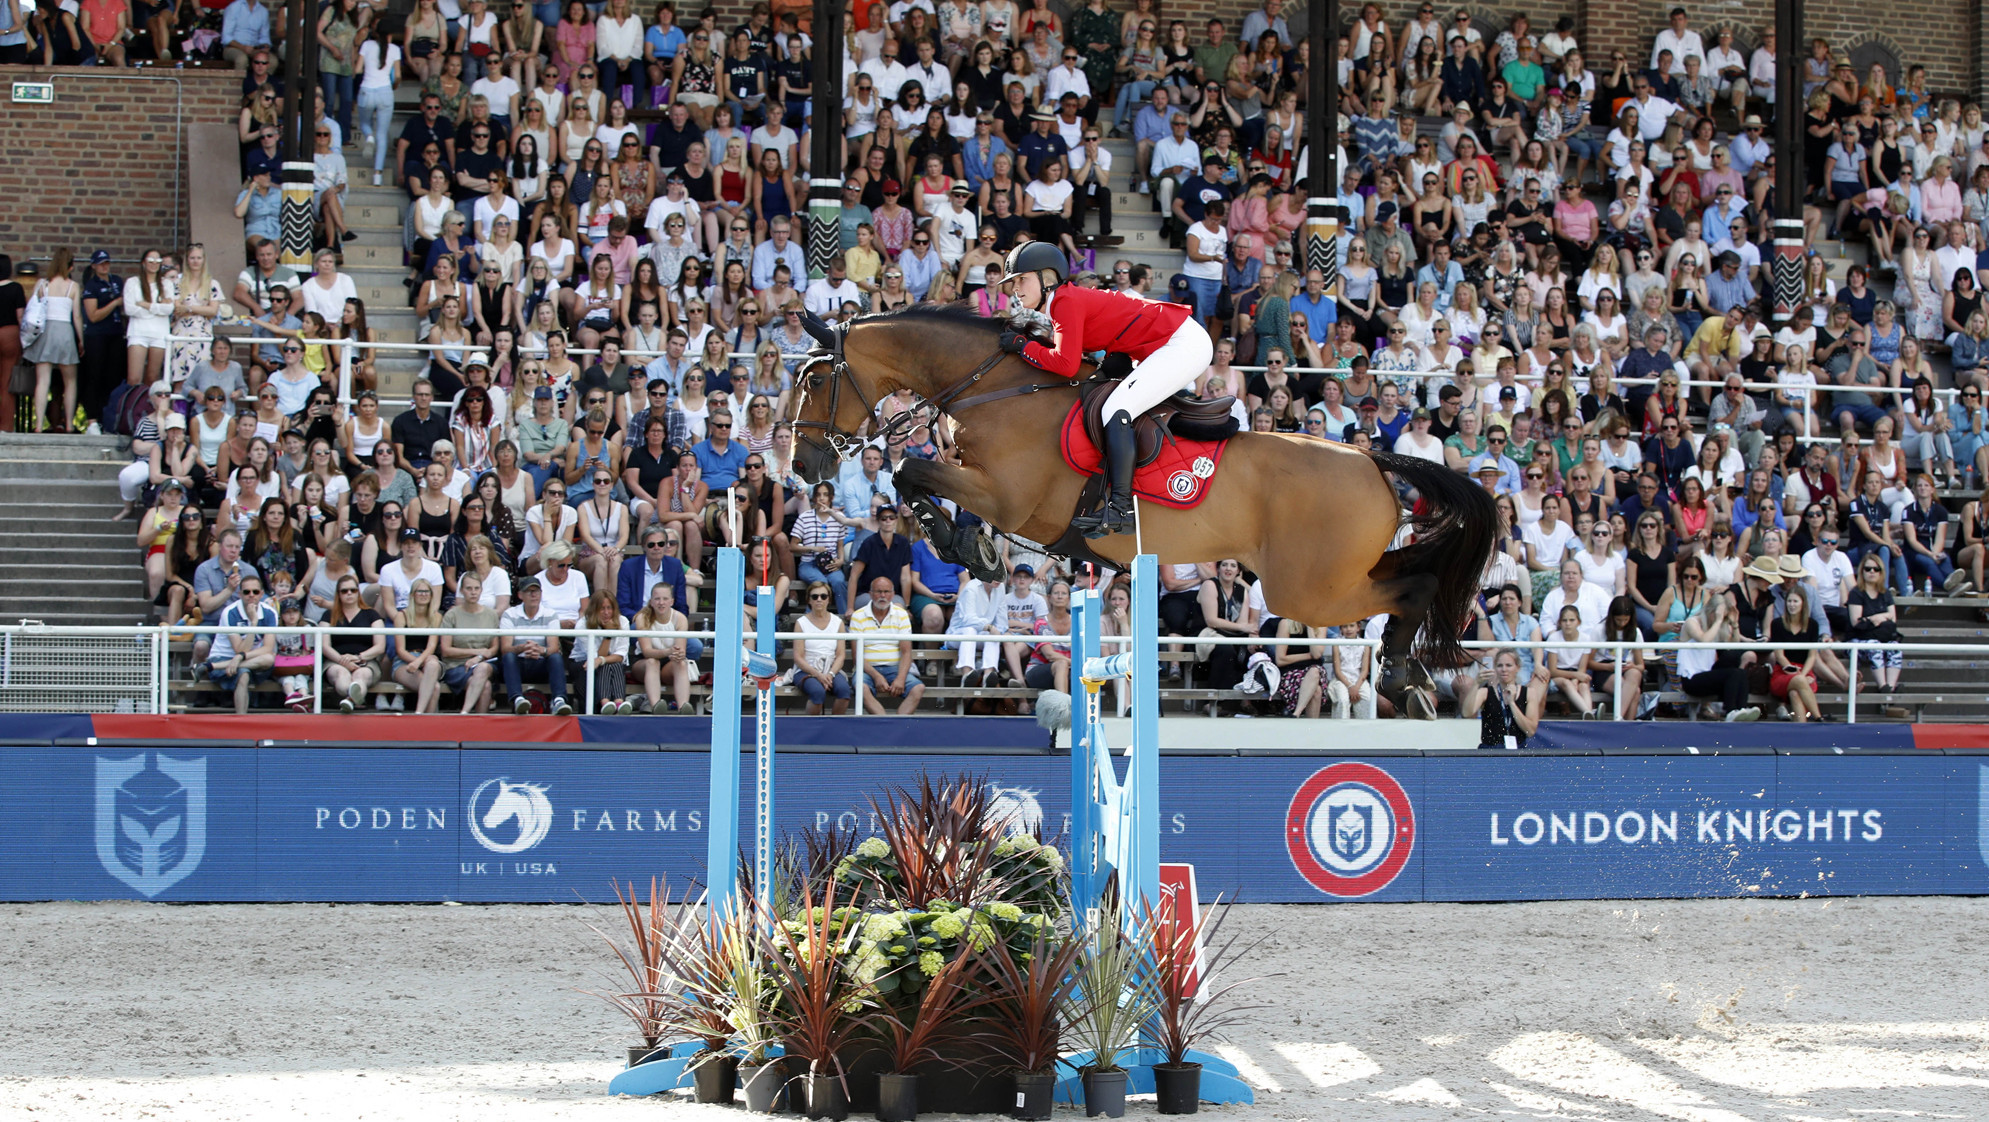 Emily Moffitt completed a faultless ride to help London Knights win the Longines GCL event in Stockholm ©GCL